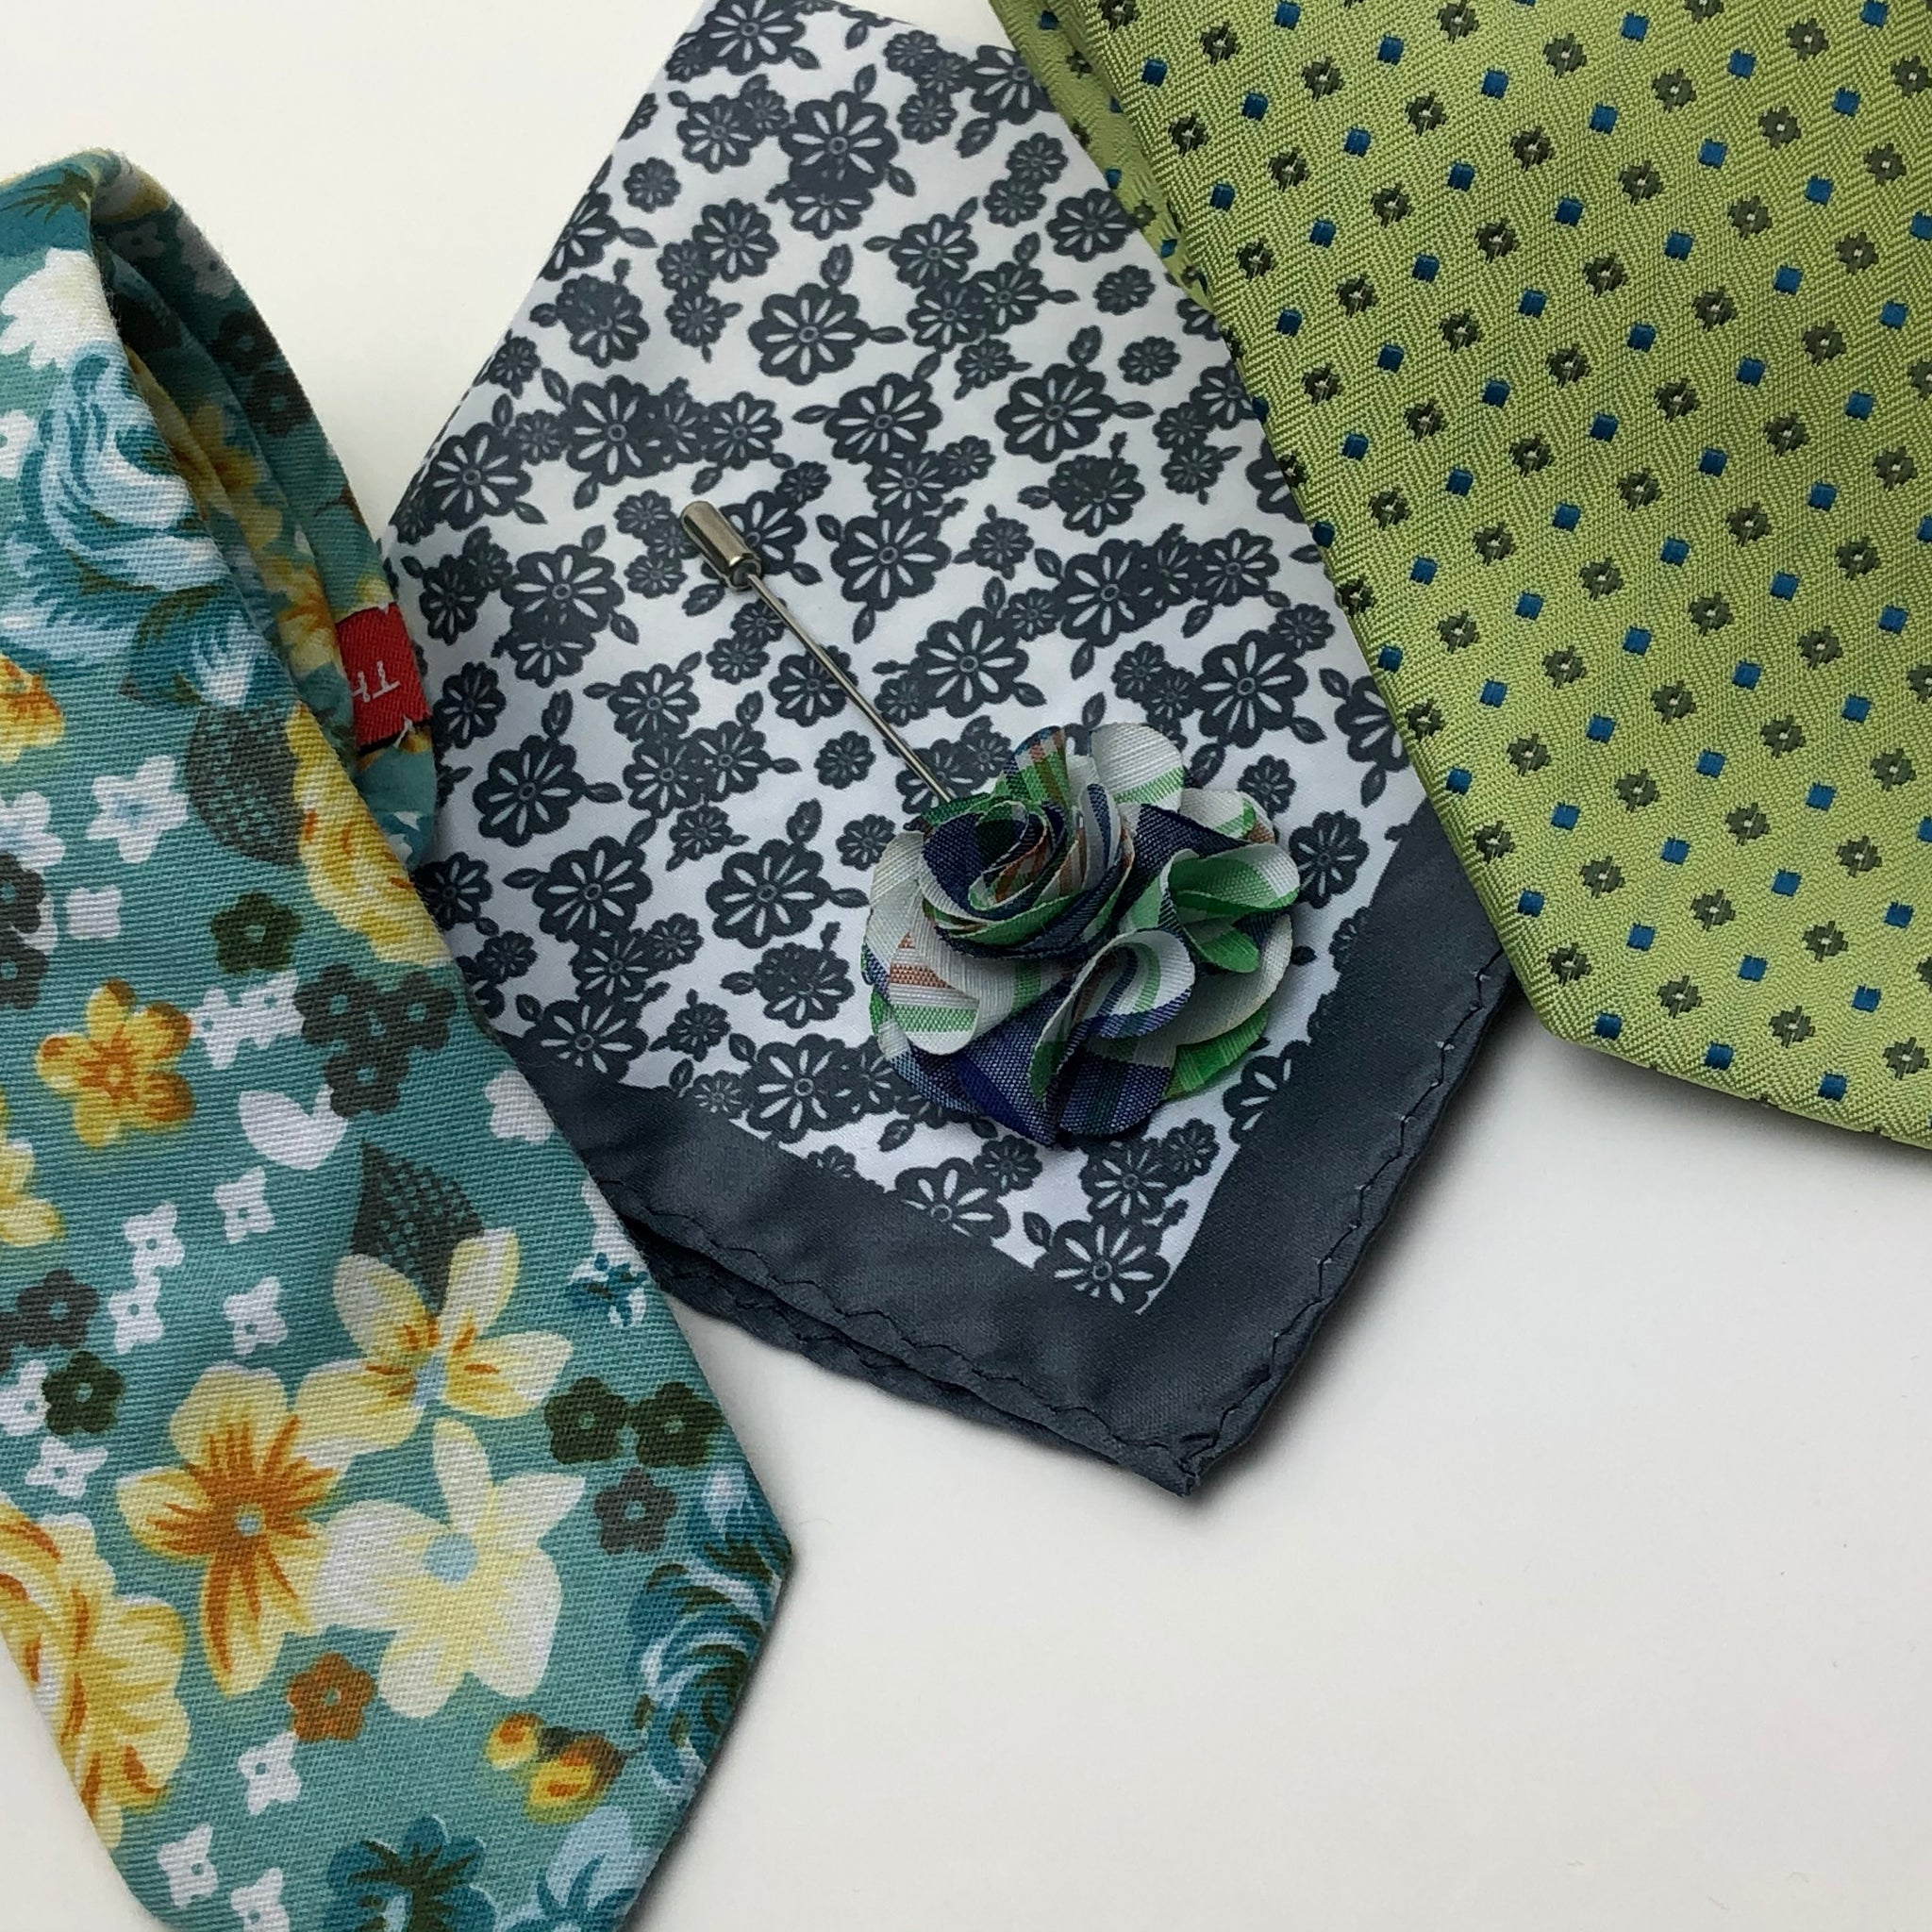 Men's Accessories- Tie, Bow-Tie, Lapel Pin, Pocket Square, Fashion